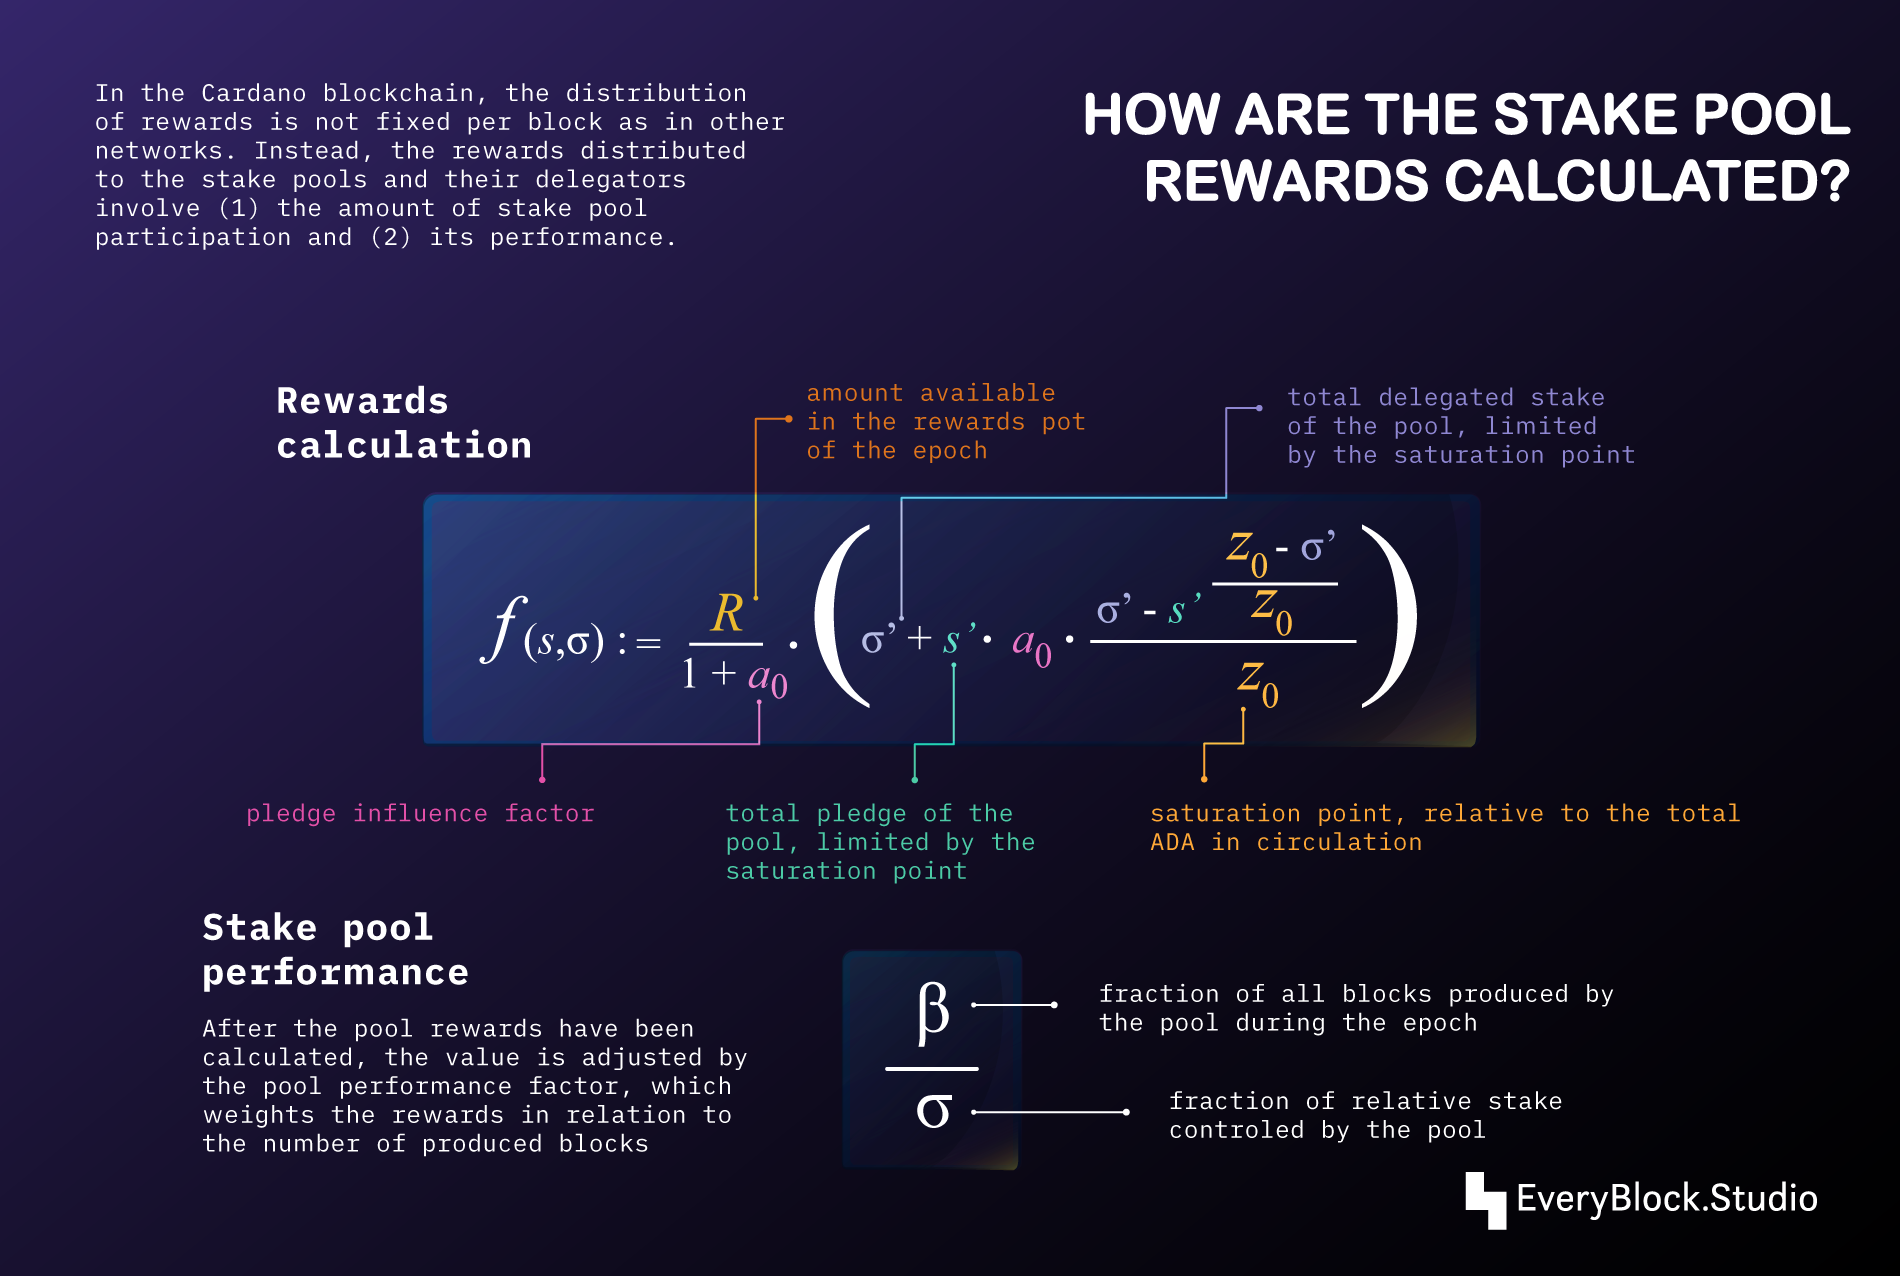 How are the stake pool rewards calculated?